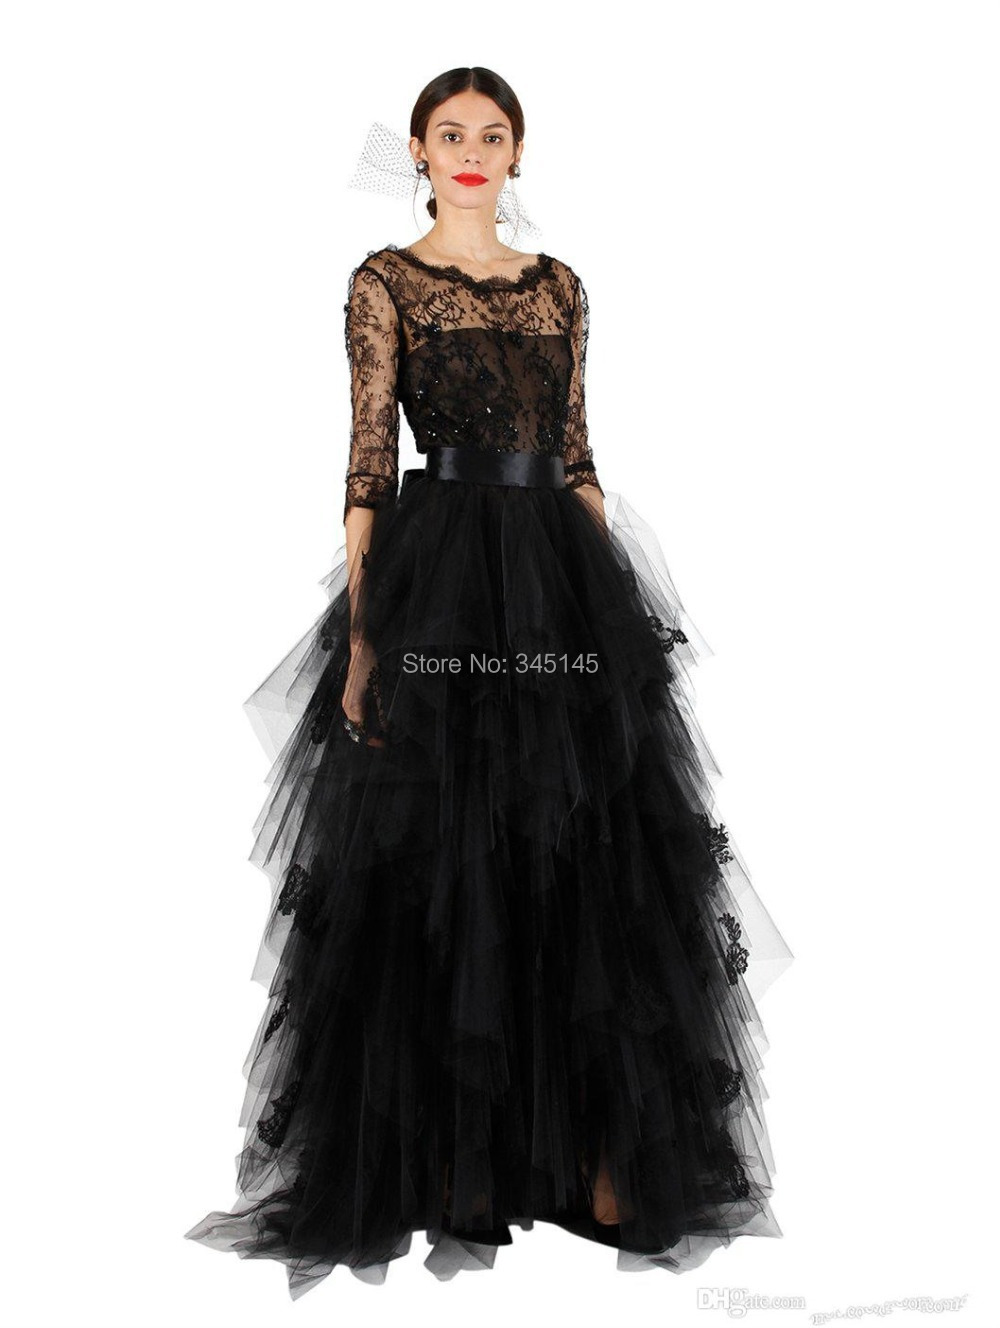 Sexy Formal Evening Dresses Ball Gown Crew Floor Length Sexy Prom Gowns Lace Embroidery Sash Tiered Tulle Gown Custom Made